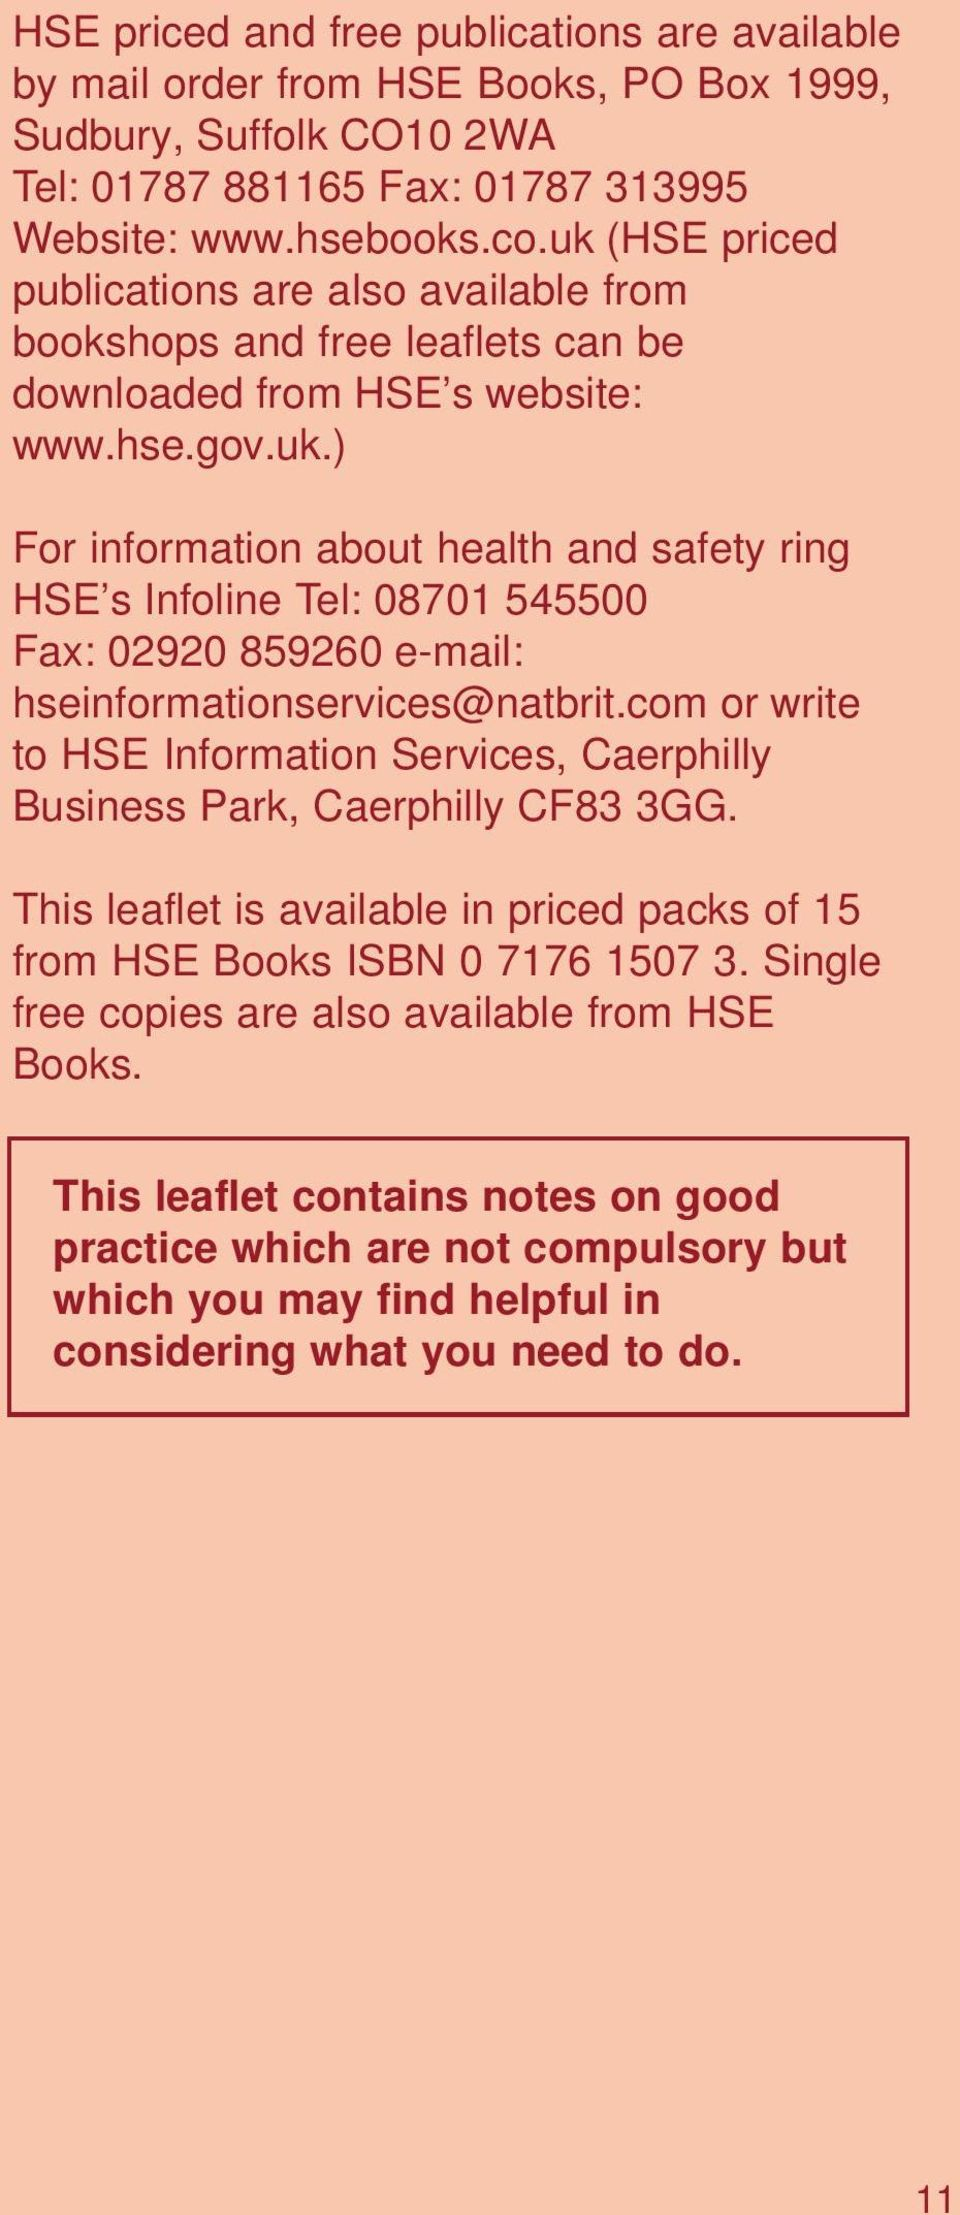 com or write to HSE Information Services, Caerphilly Business Park, Caerphilly CF83 3GG. This leaflet is available in priced packs of 15 from HSE Books ISBN 0 7176 1507 3.